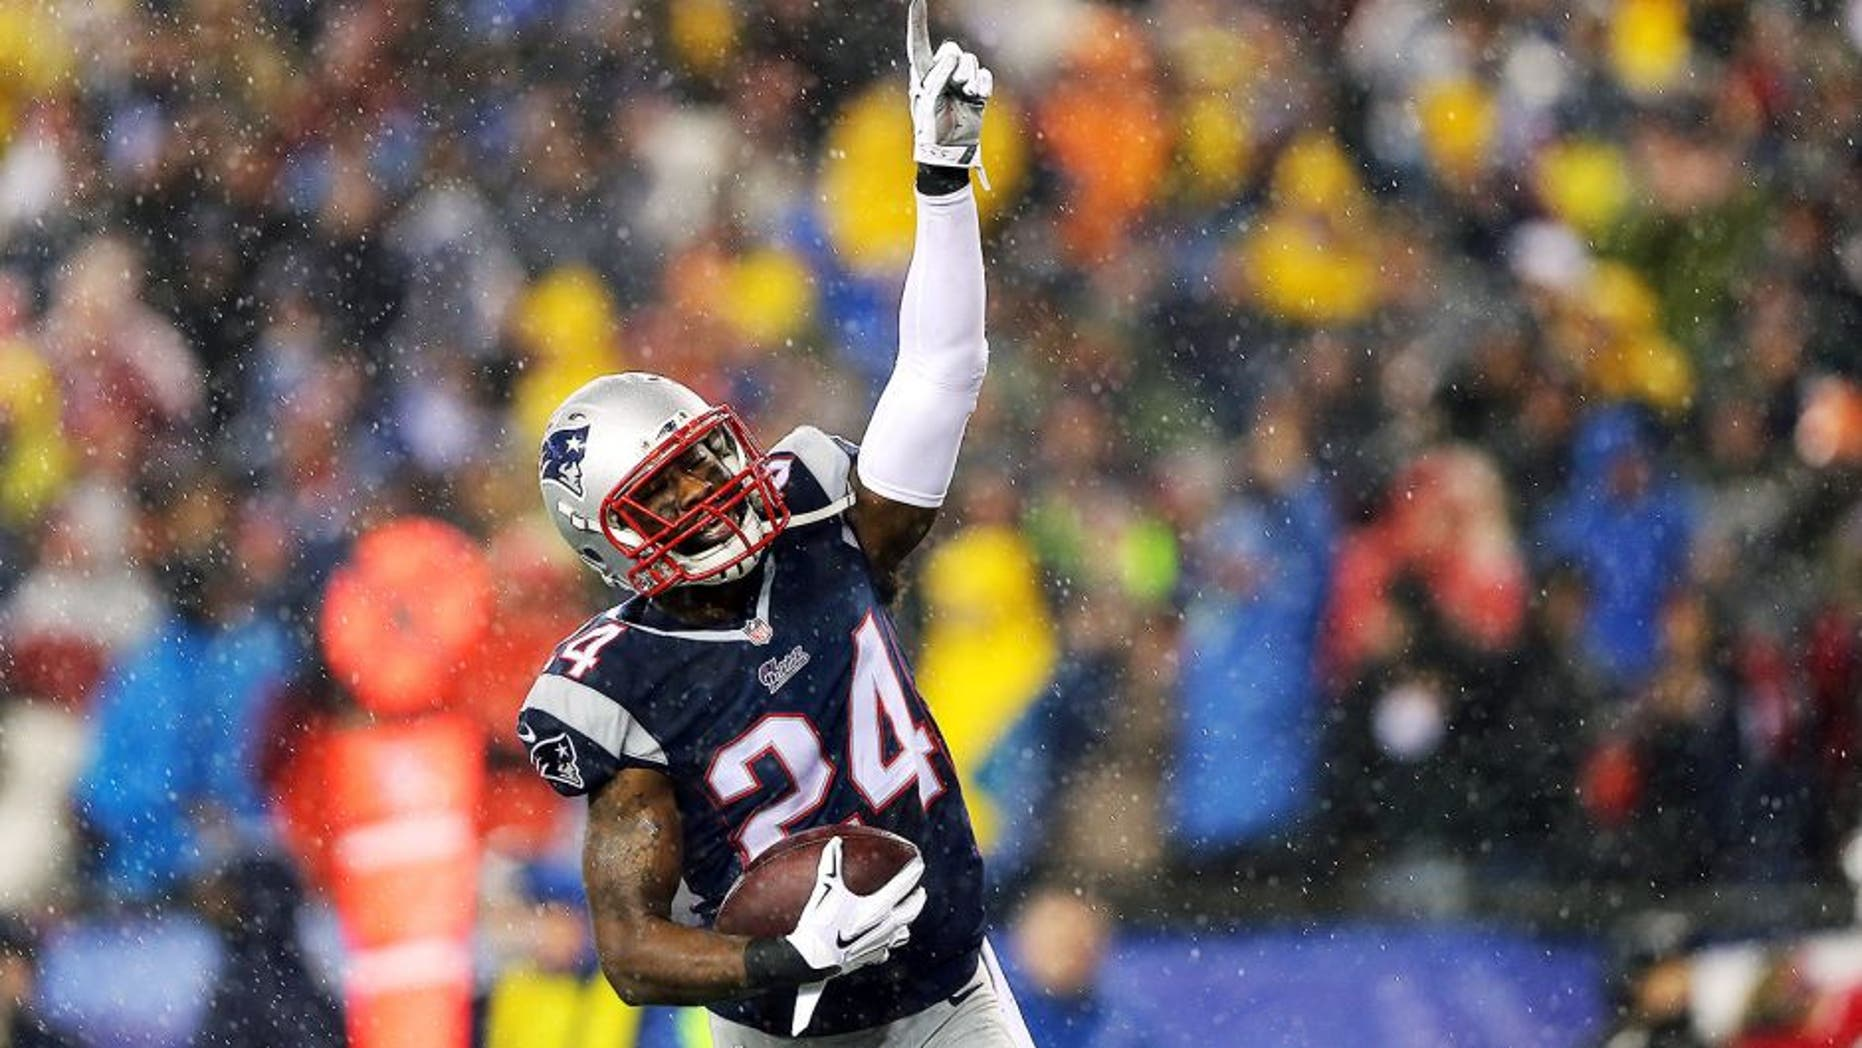 FOXBORO, MA - JANUARY 18: Darrelle Revis #24 of the New England Patriots celebrates after an interception in the third quarter against the Indianapolis Colts of the 2015 AFC Championship Game at Gillette Stadium on January 18, 2015 in Foxboro, Massachusetts. (Photo by Elsa/Getty Images)